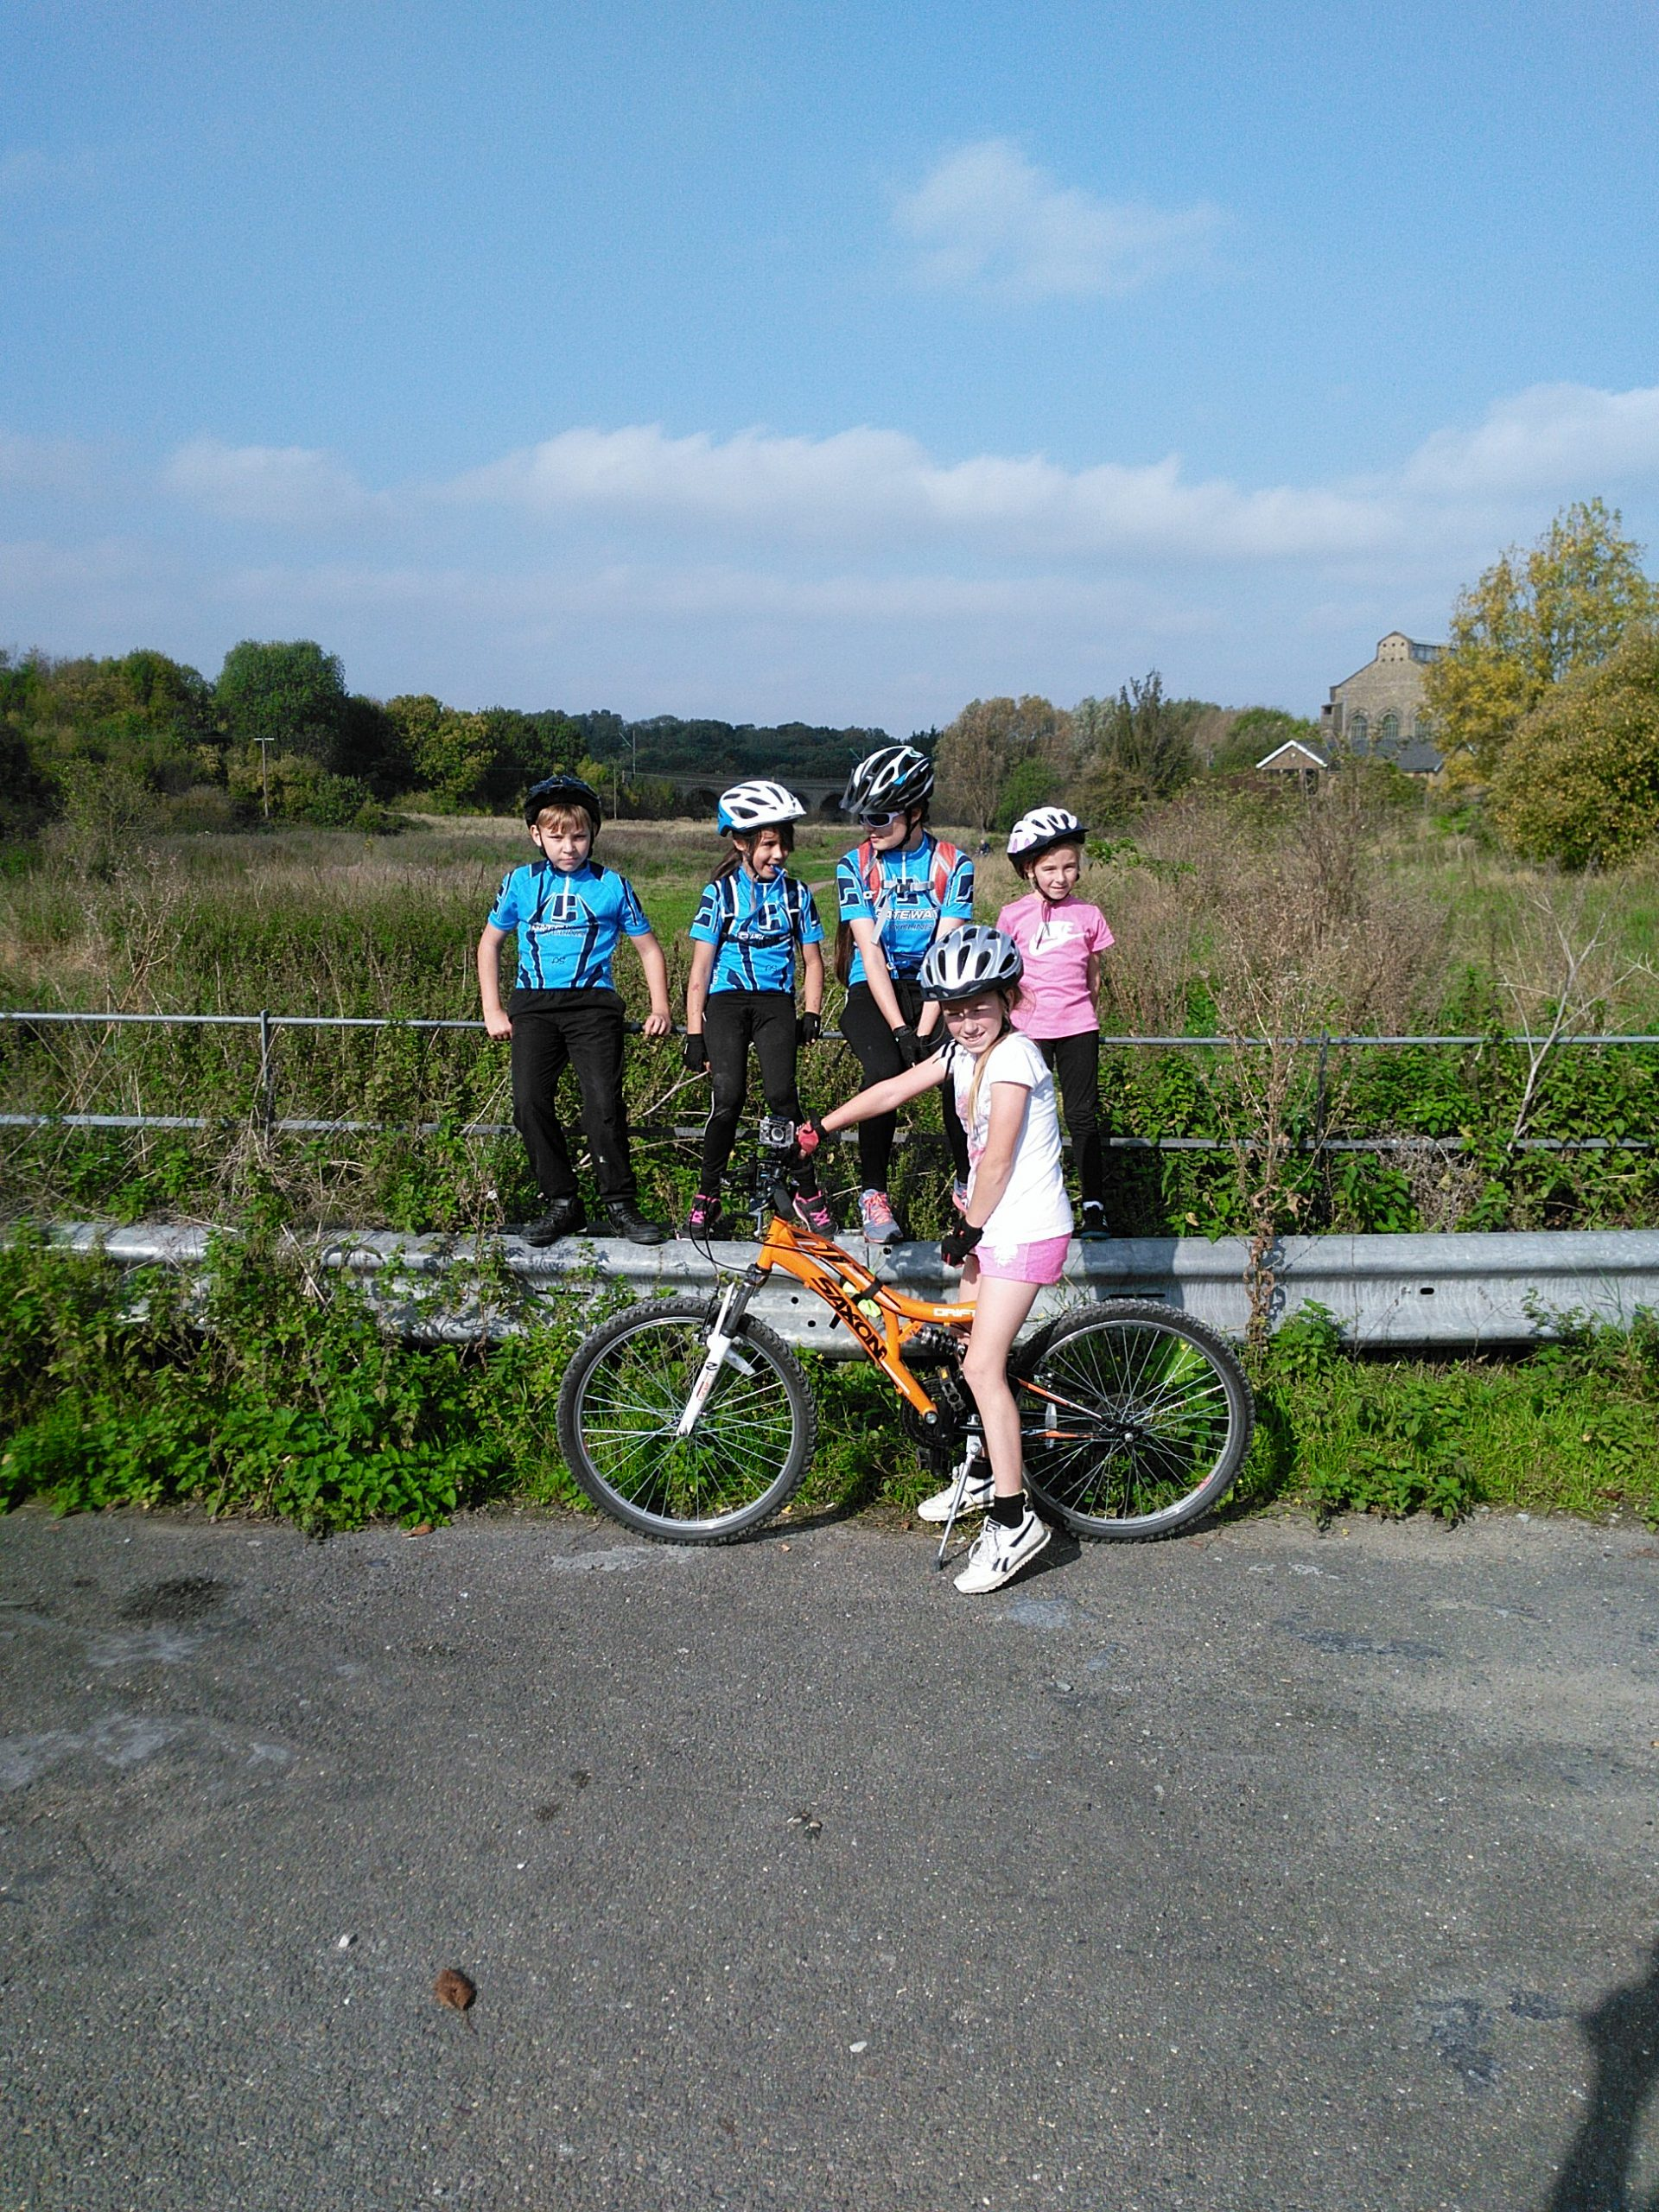 Ride Report – Family Ride to Rainham Marshes